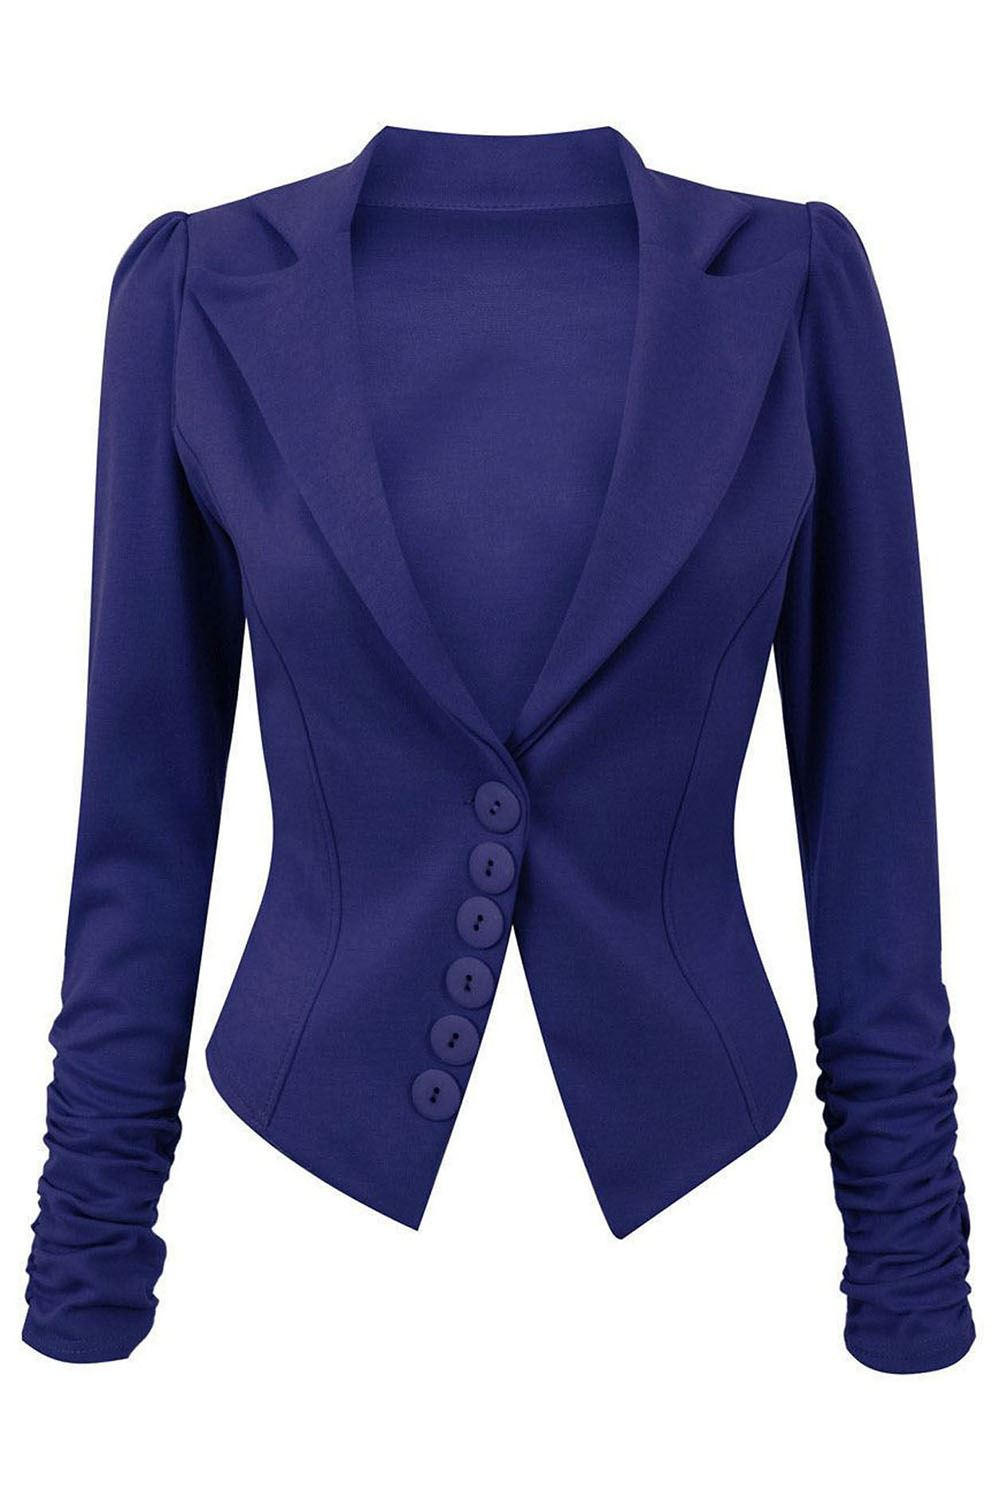 Womens-Ladies-6-Buttons-Ruched-Sleeve-Smart-Slim-Office-Collared-Blazer-Jacket